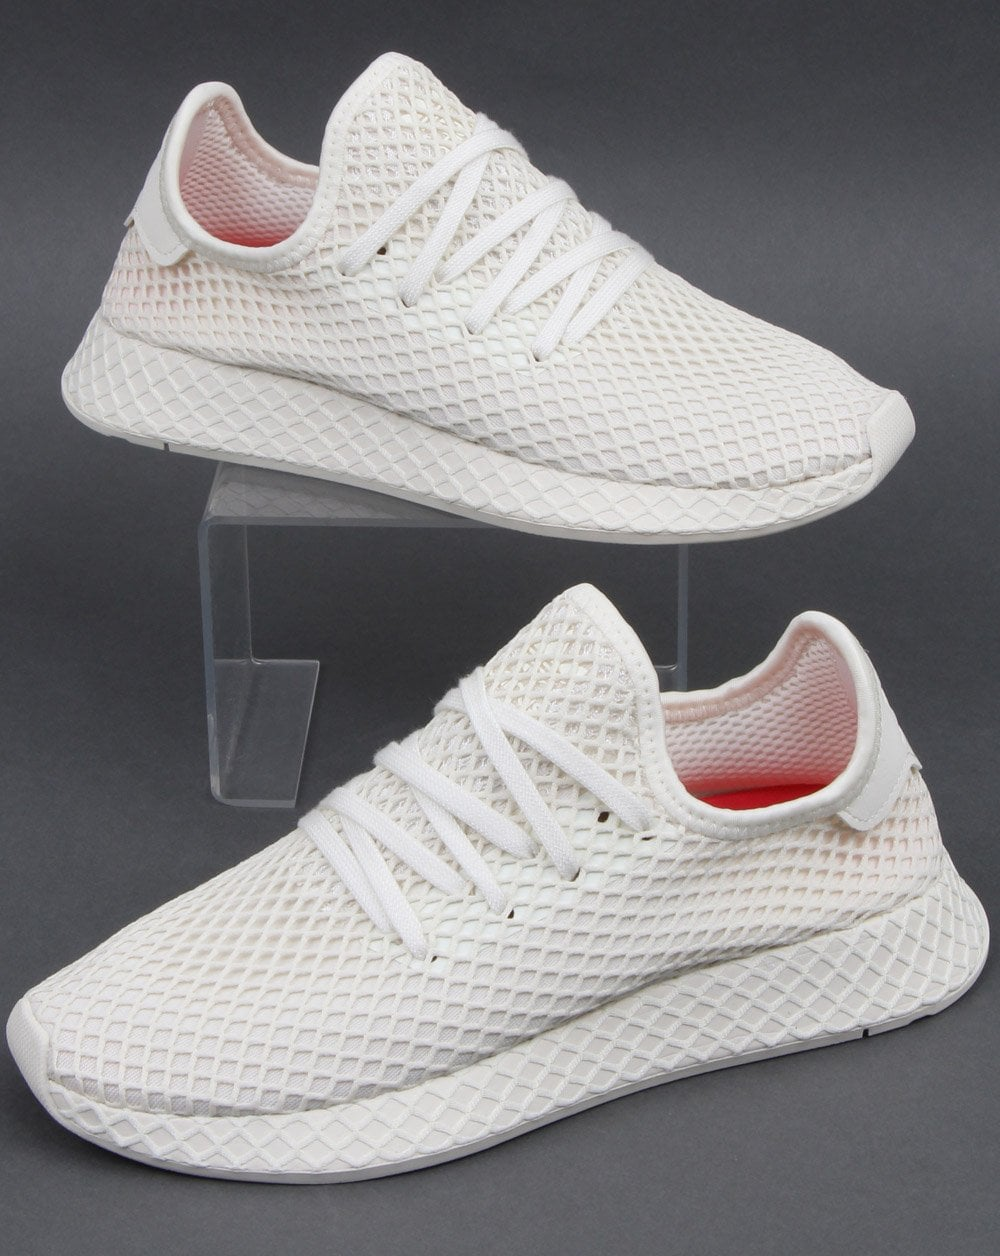 88e3d95ee adidas Trainers Adidas Deerupt Comfort Trainers White